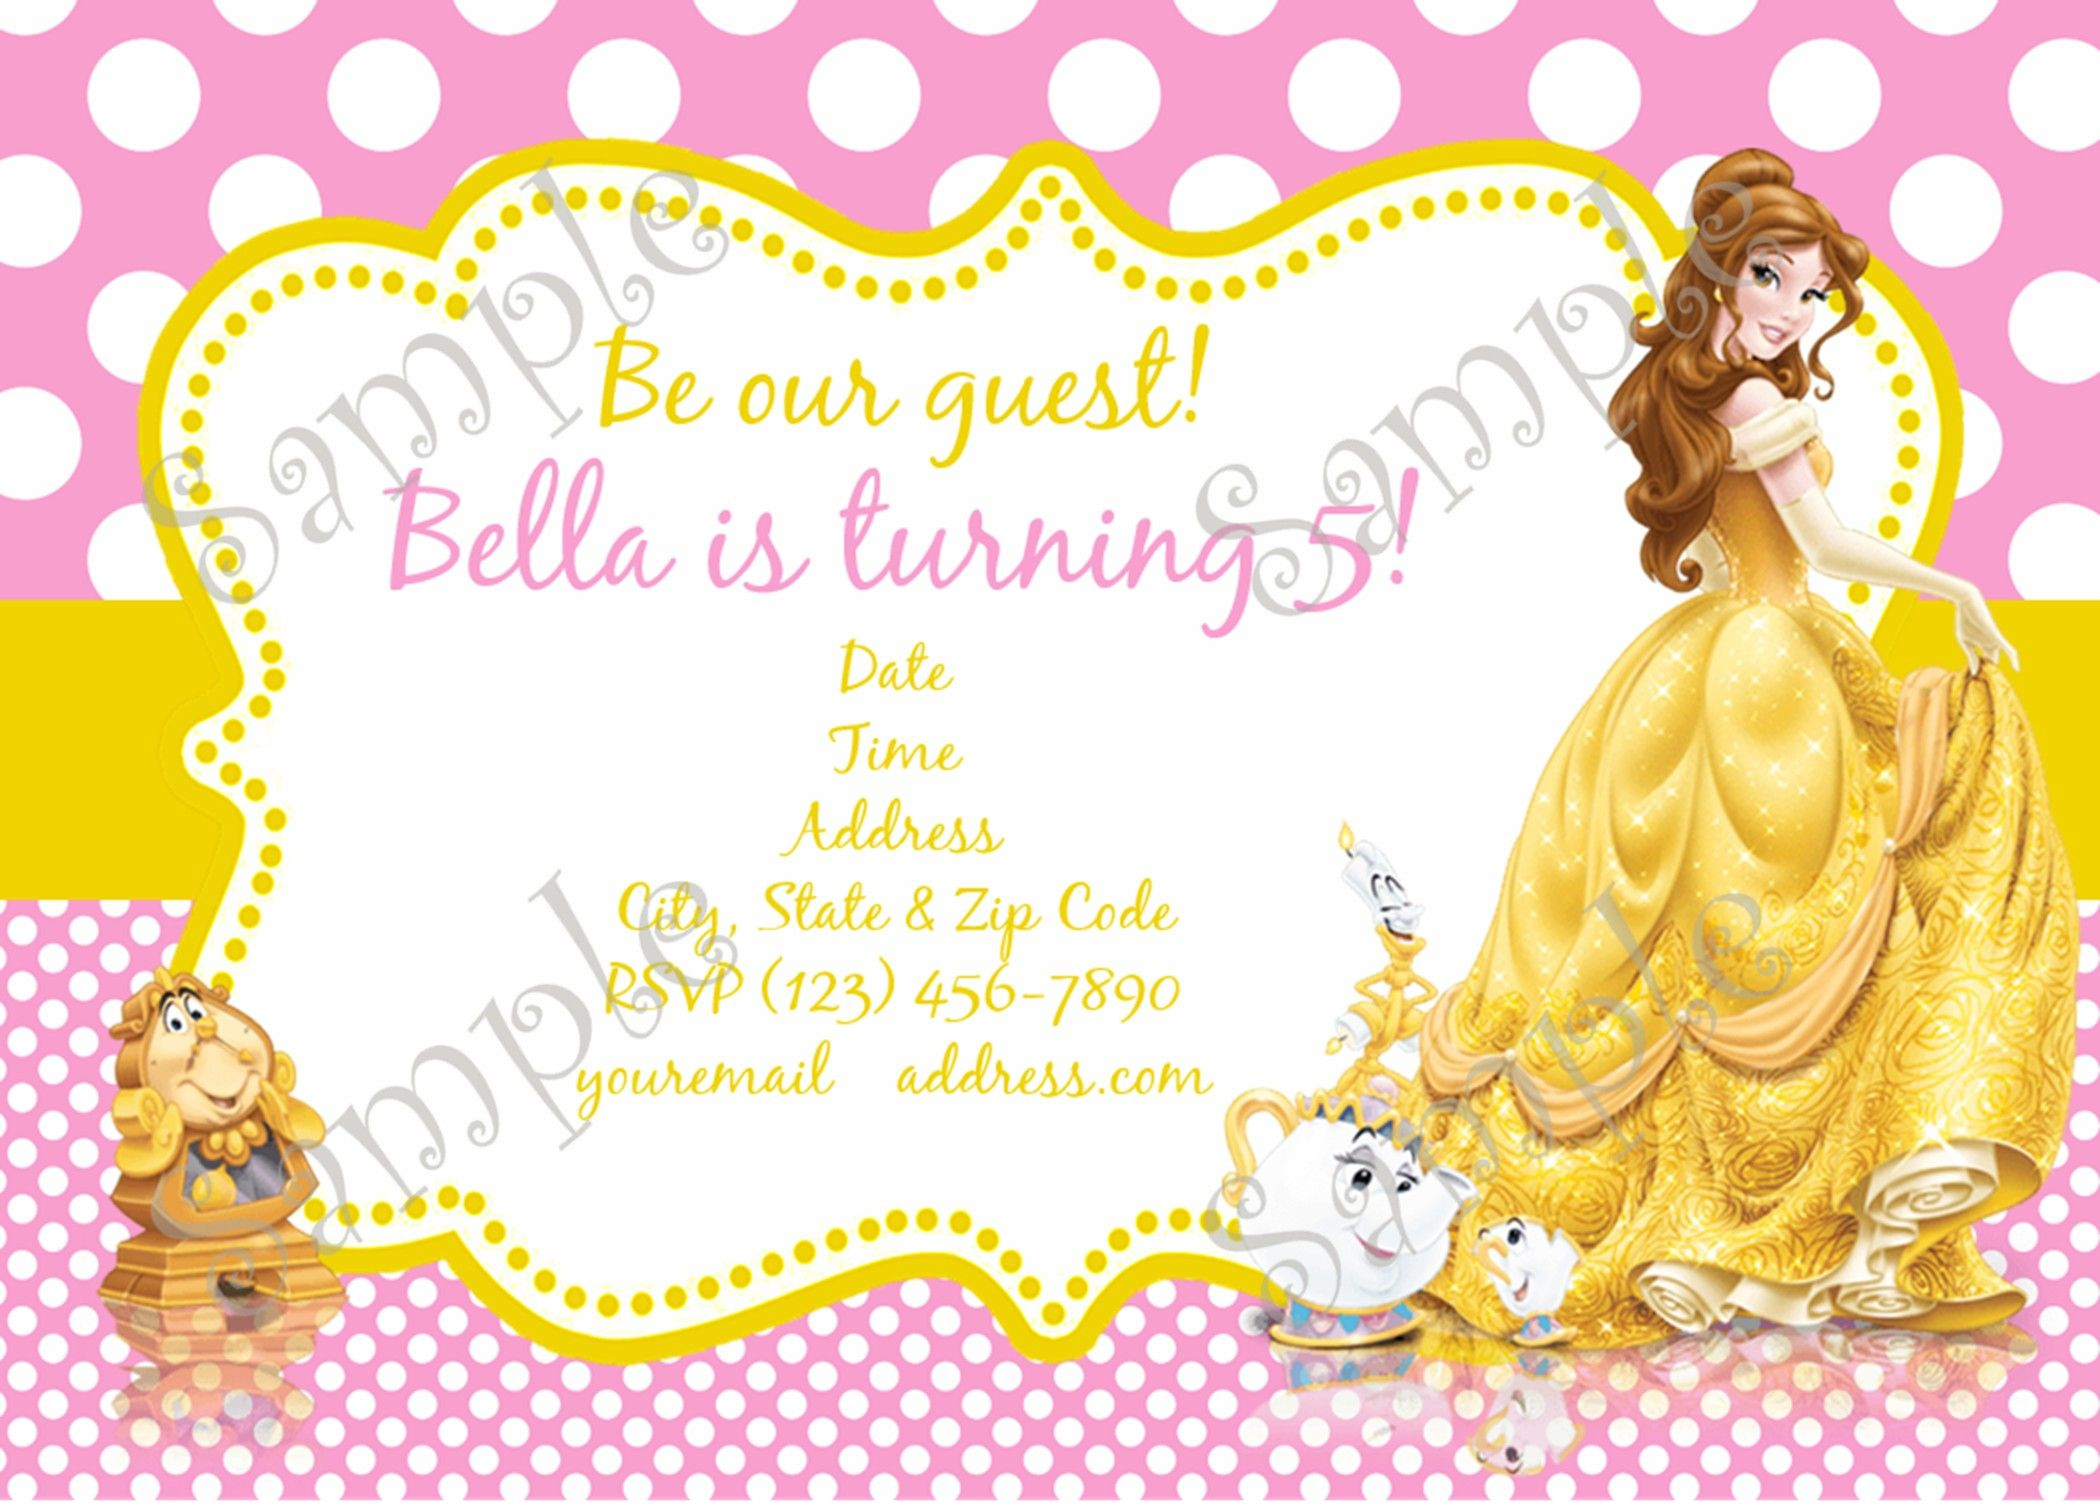 Belle invitation belle party belle birthday party invitation belle invitation belle party belle birthday party invitation belle thank you card beauty and the beast party filmwisefo